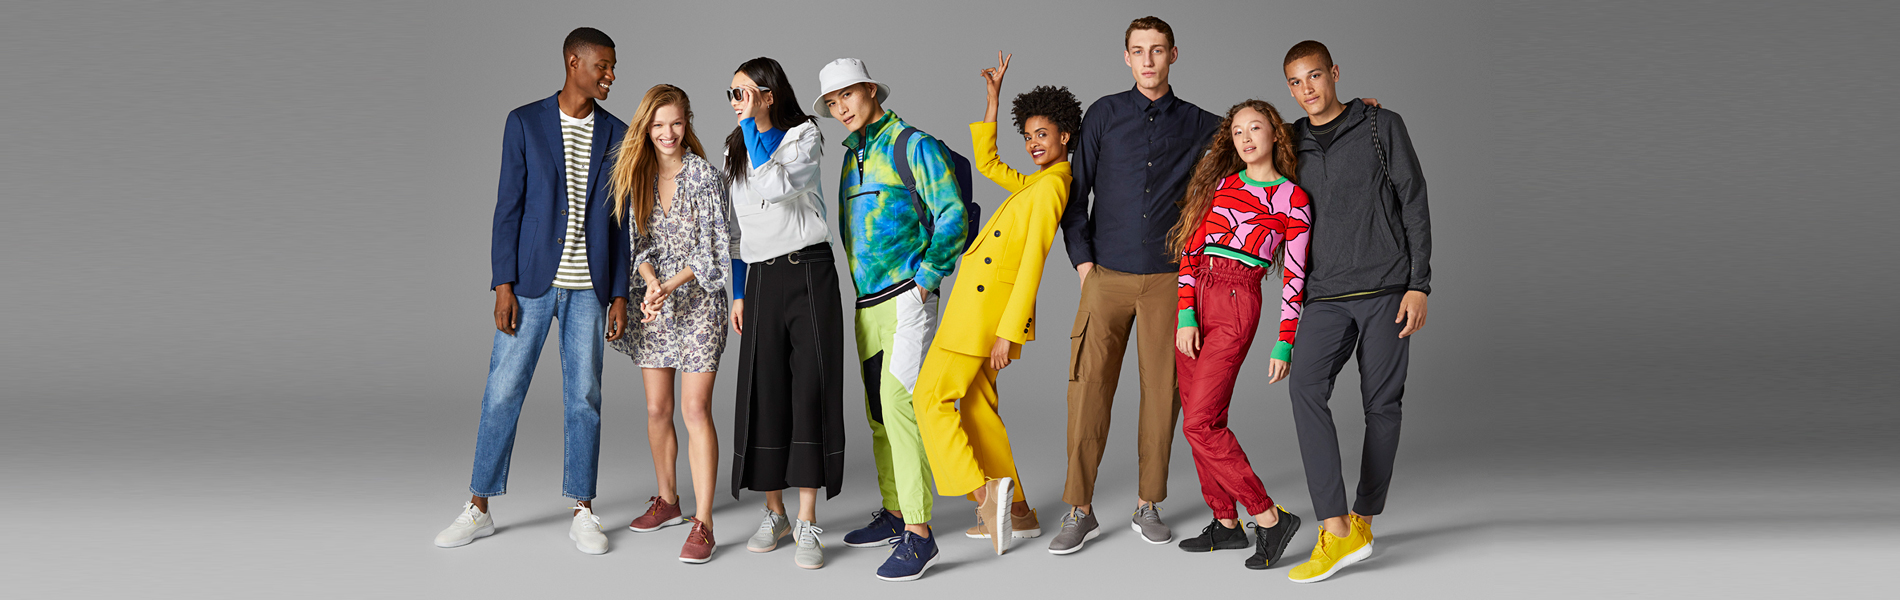 Cole Haan Announces Launch of Generation Z...